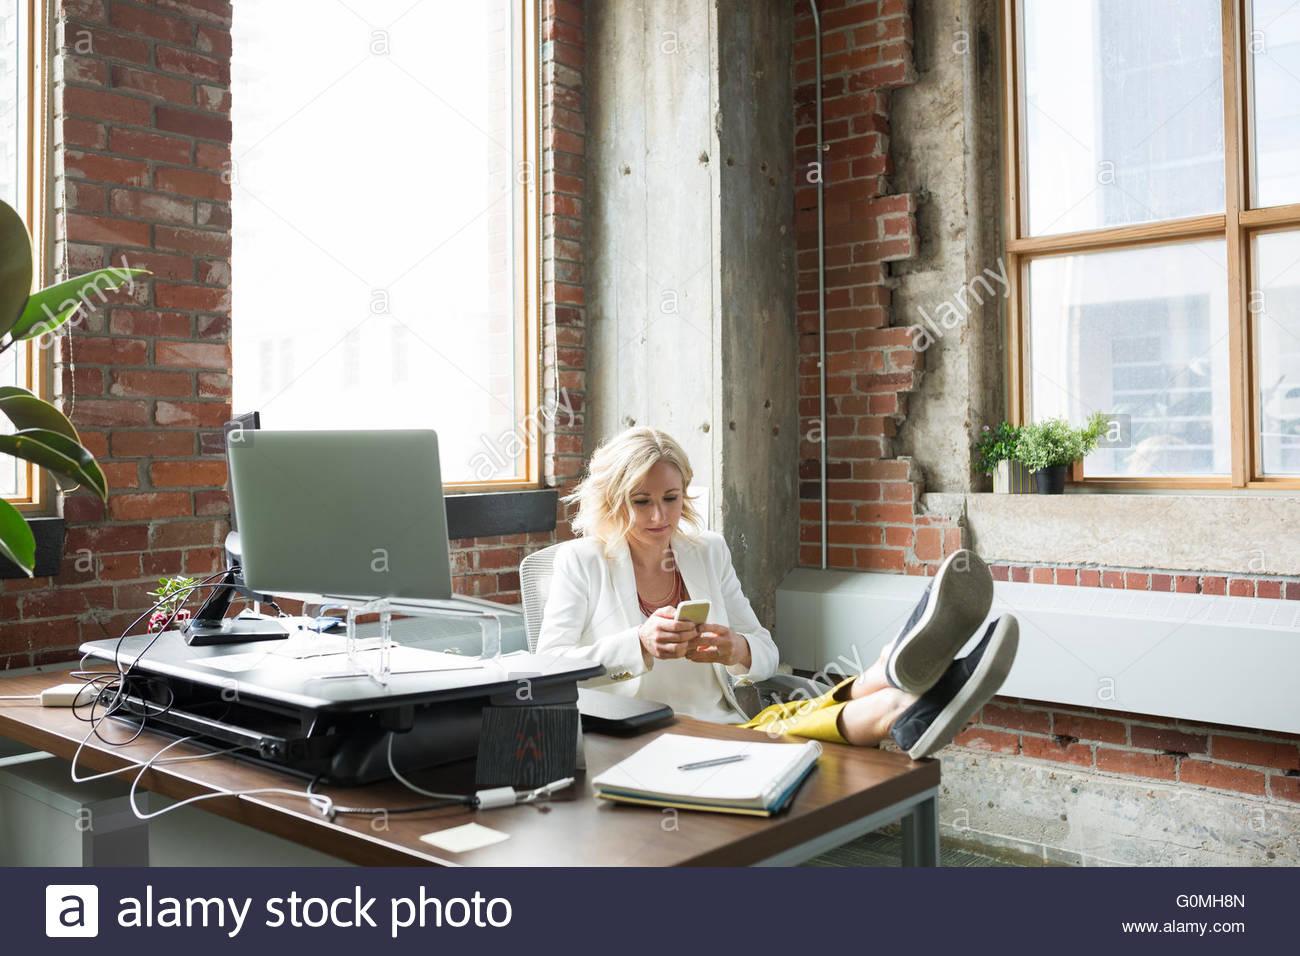 Businesswoman texting with feet up on desk - Stock Image